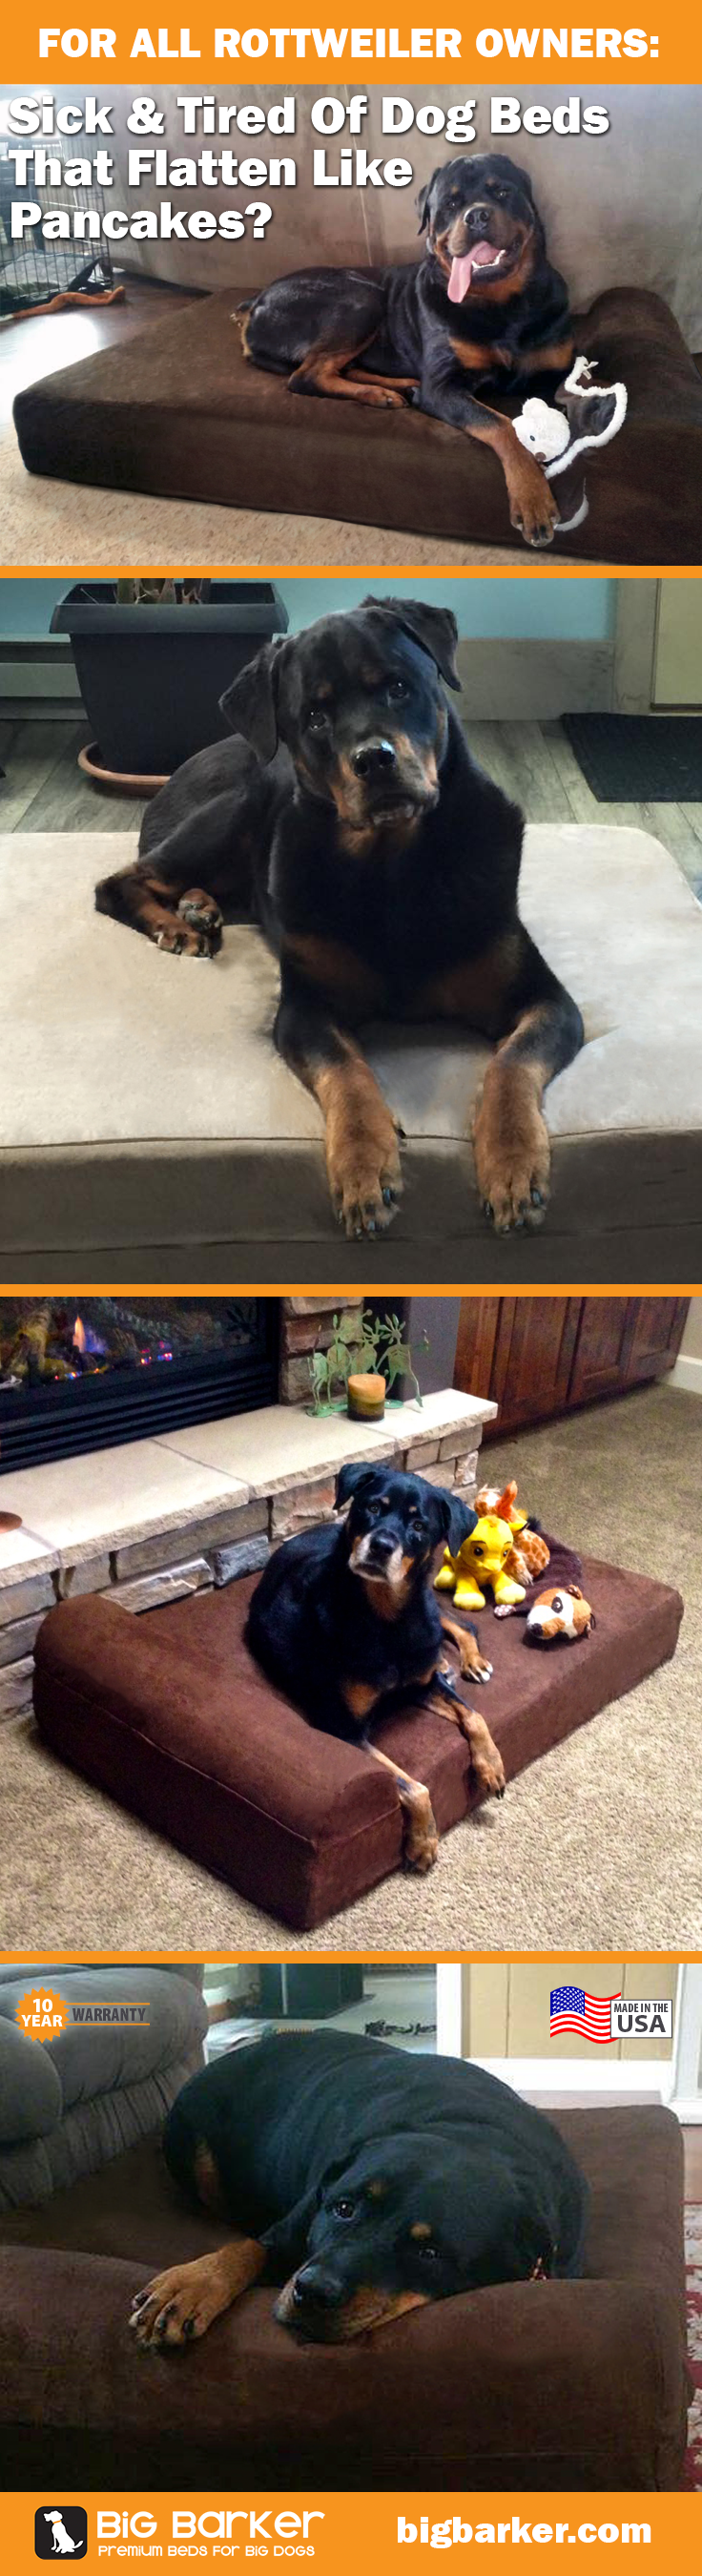 Rottweiler Dog Beds By Big Barker Americas Most Luxurious Dog